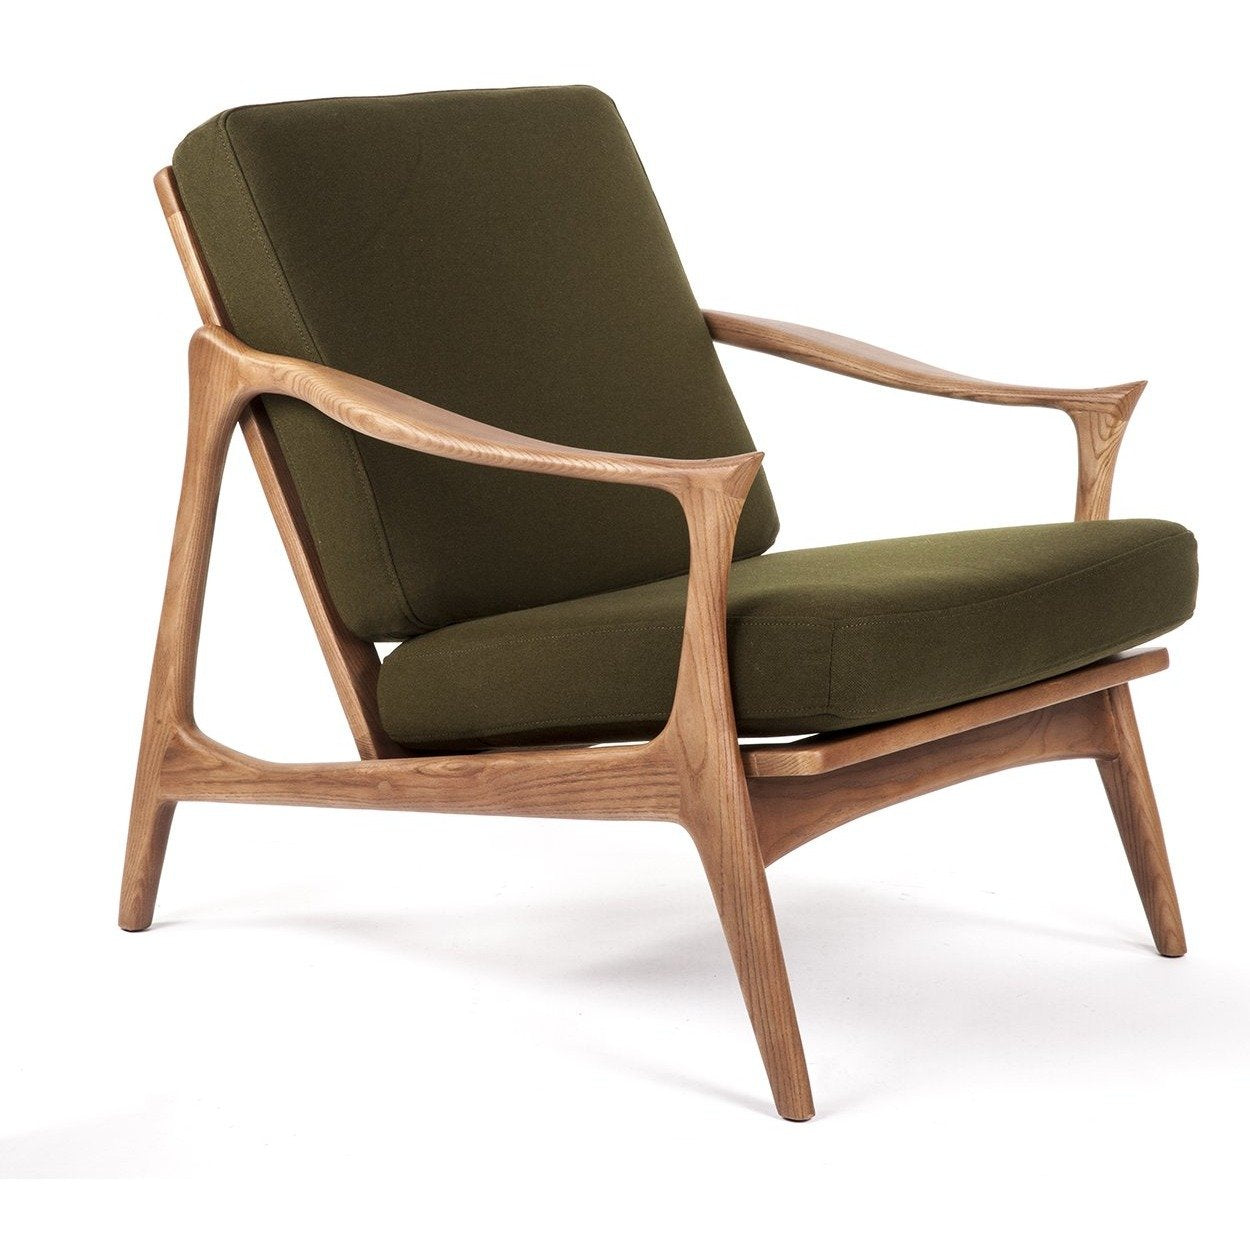 [FEC0219GRN] The Upton Easy Chair with Horned Armrests